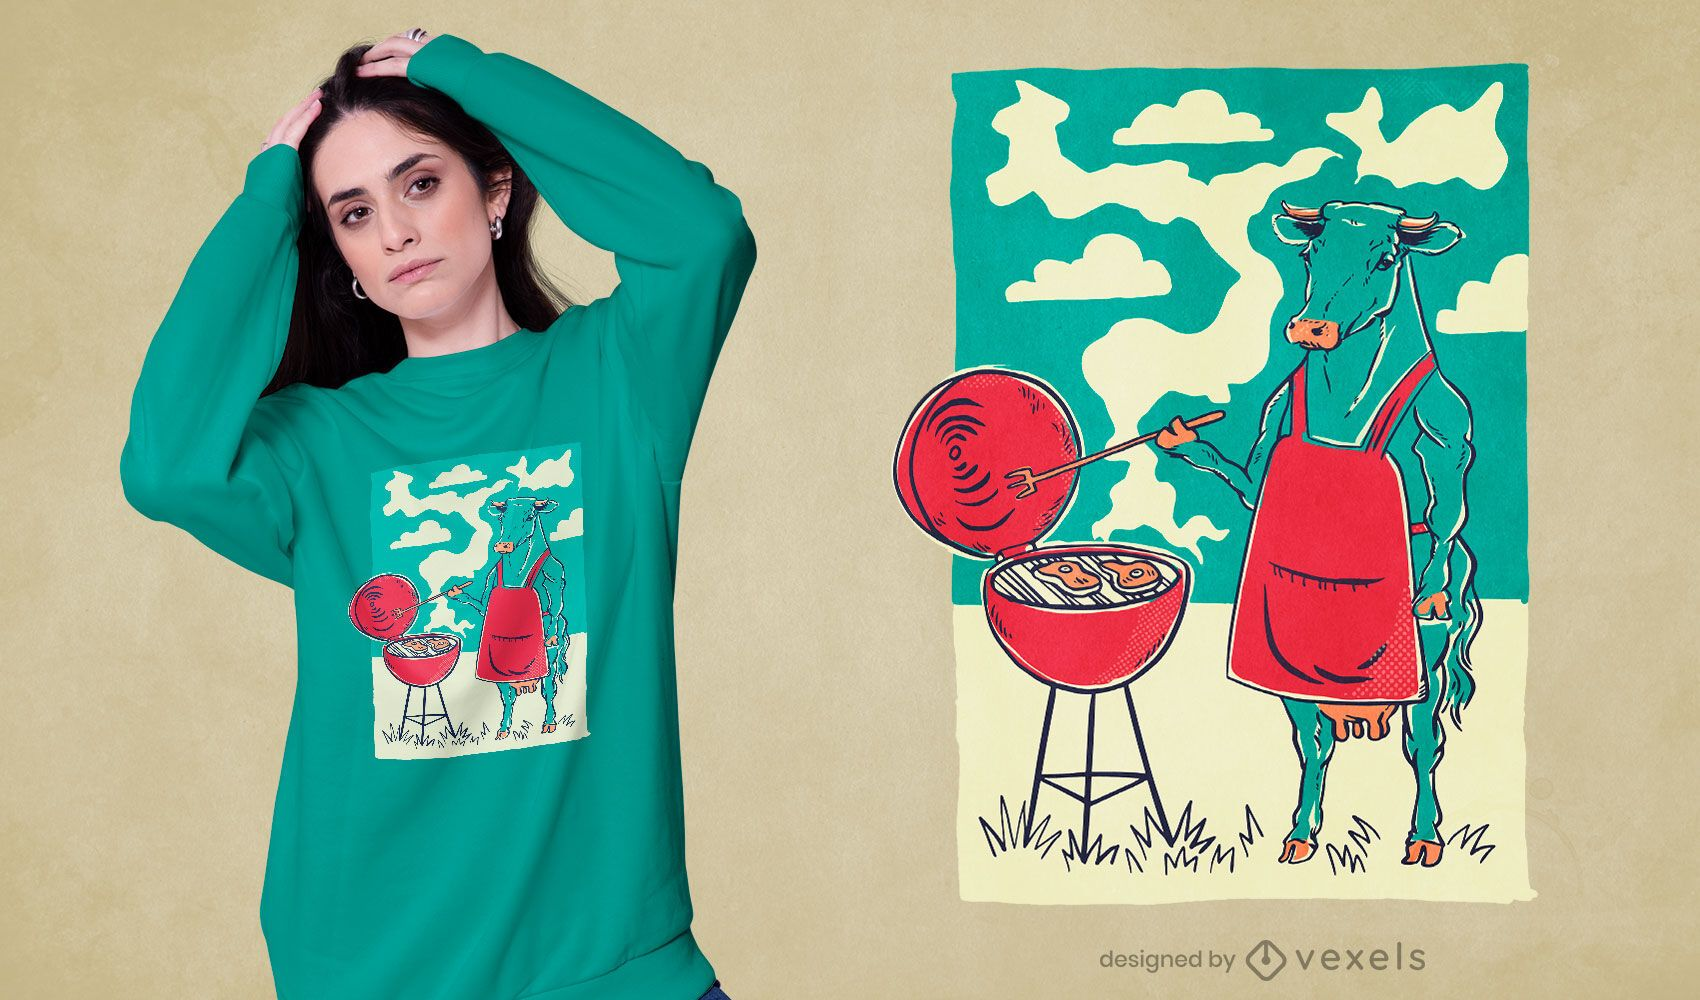 Cow barbecue grill t-shirt design